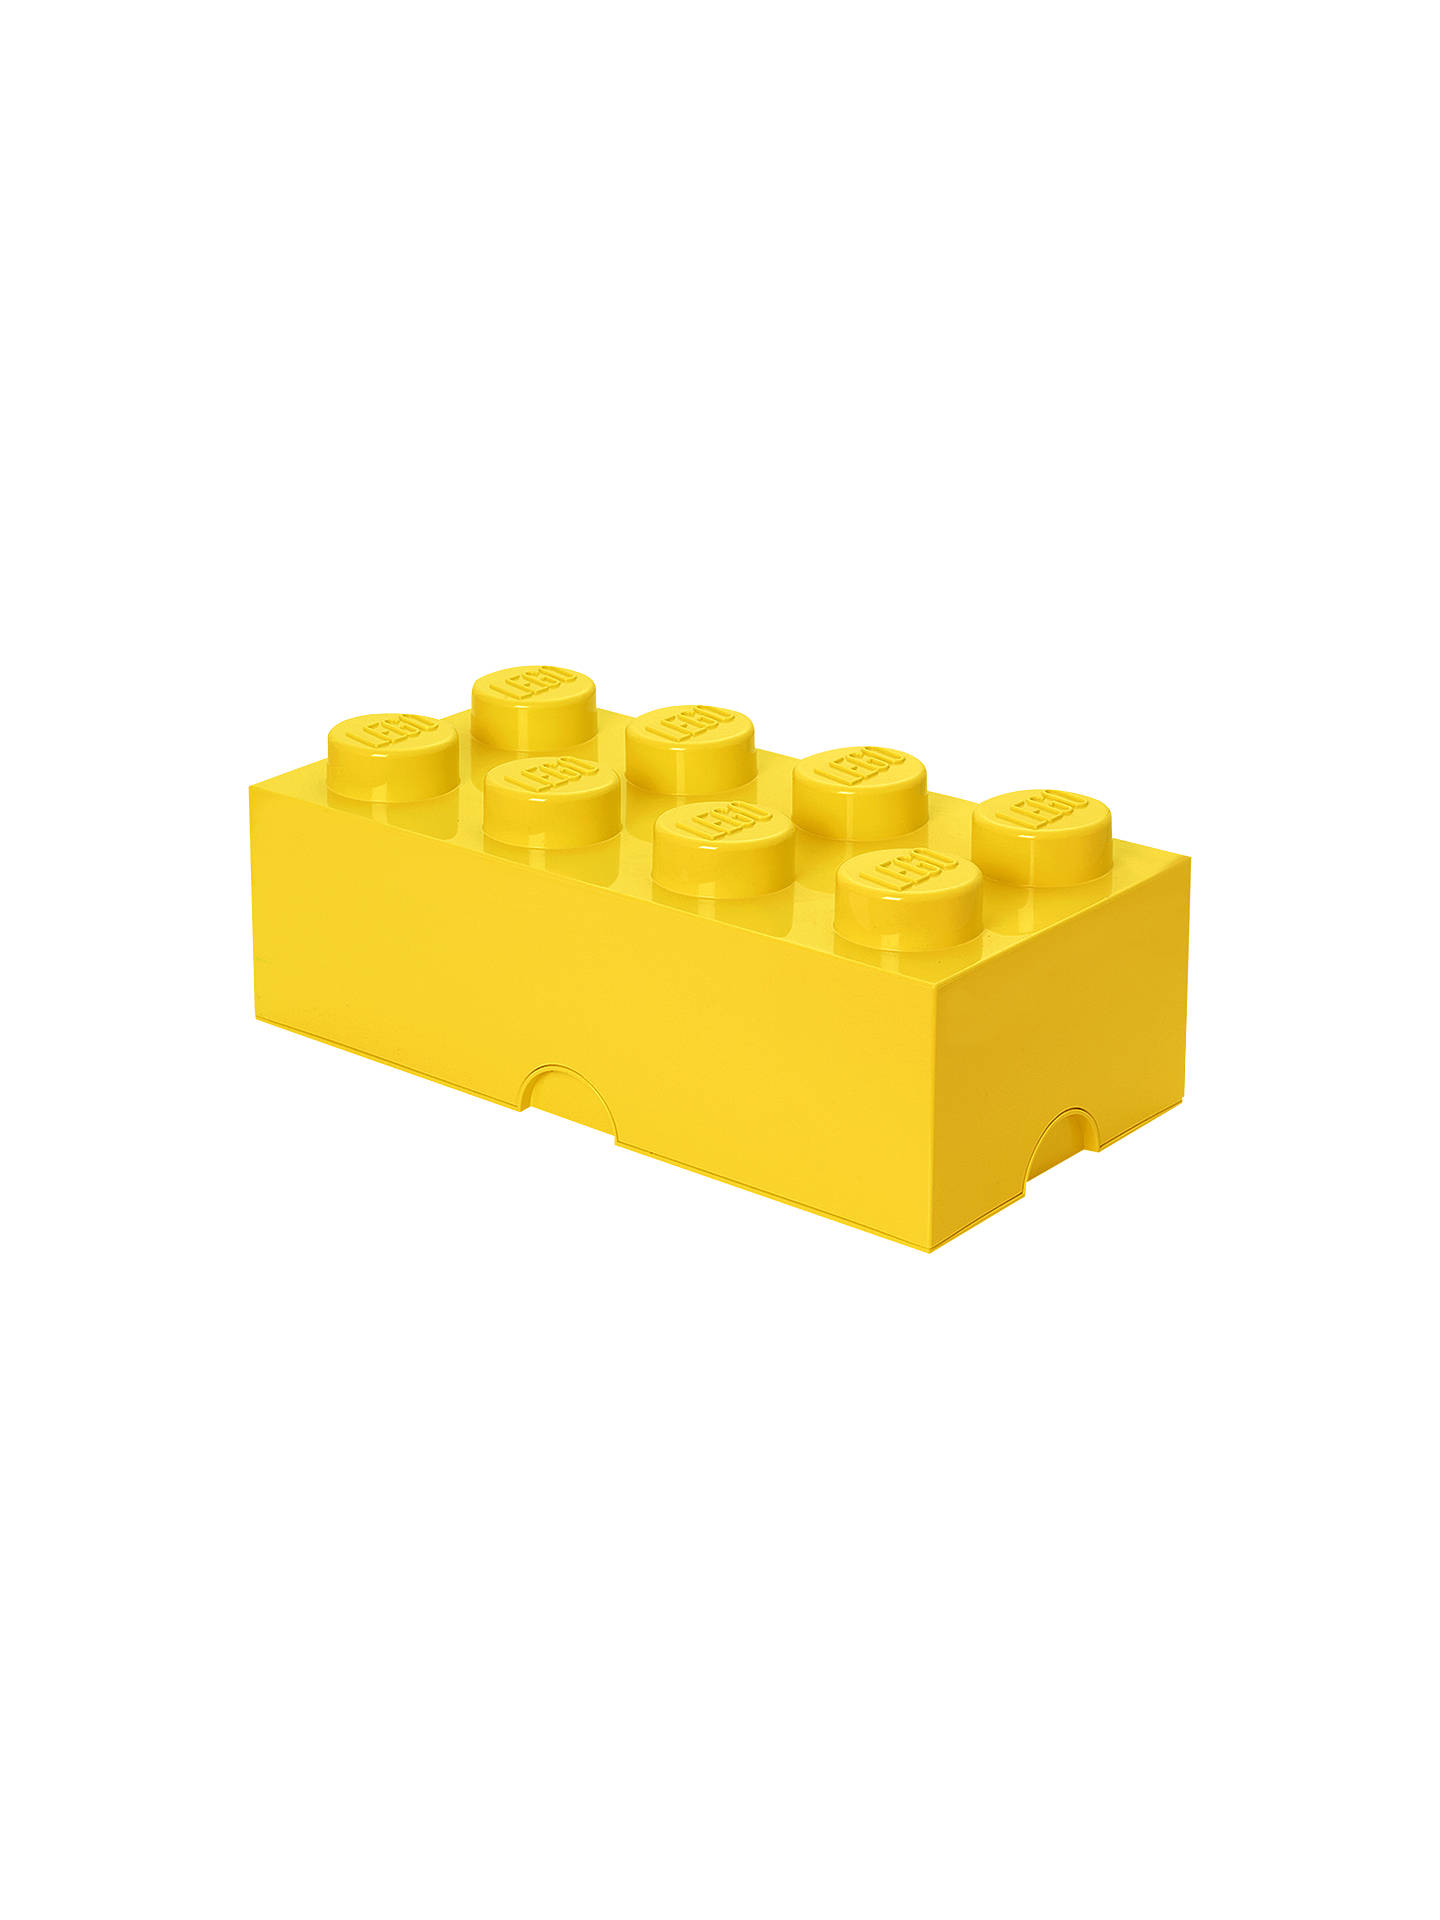 BuyLEGO 8 Stud Storage Brick, Yellow Online at johnlewis.com